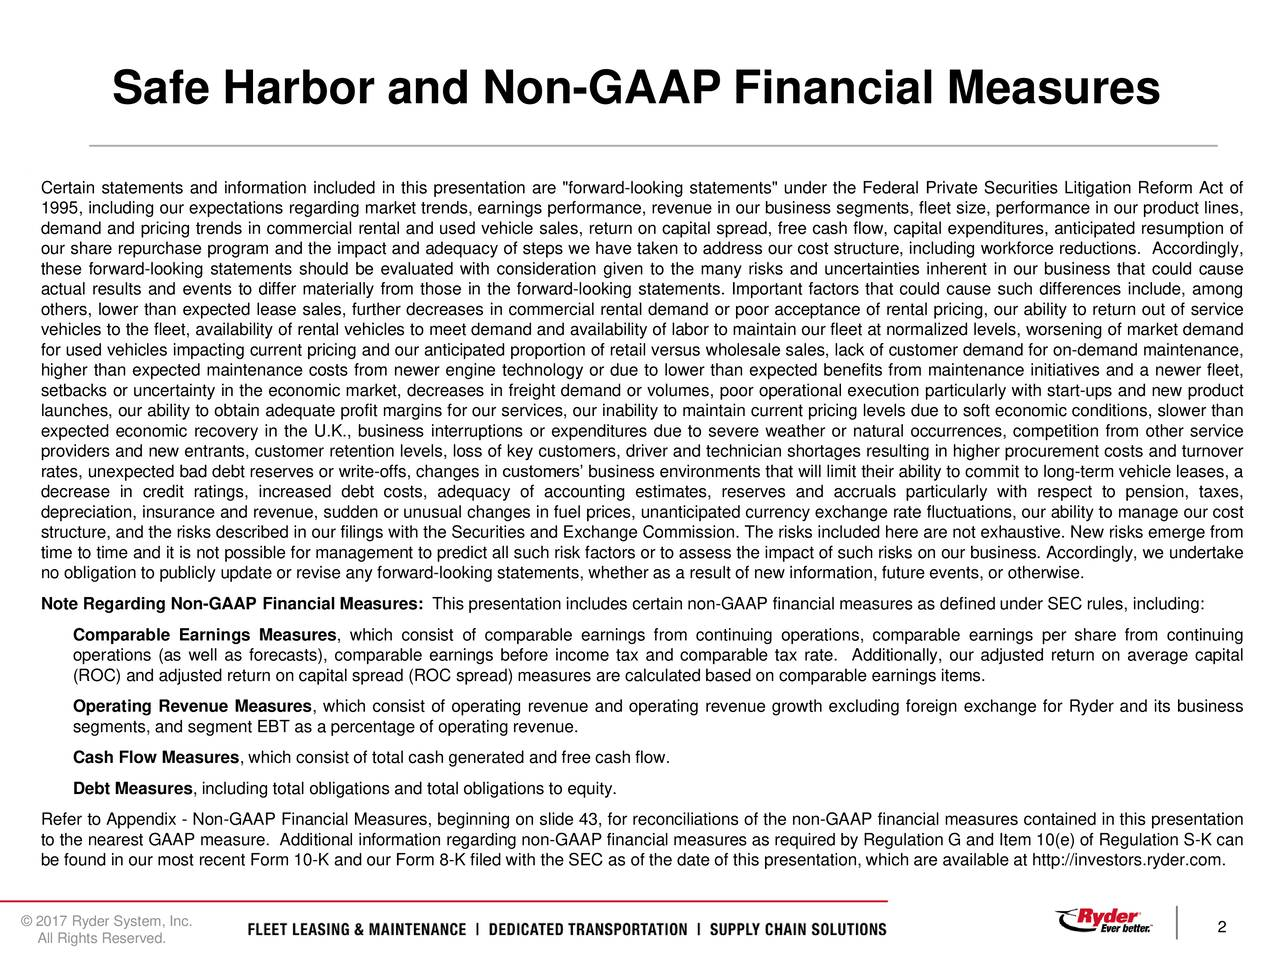 """Certain statements and information included in this presentation are """"forward-looking statements"""" under the Federal Private Securities Litigation Reform Act of 1995, including our expectations regarding market trends, earnings performance, revenue in our business segments, fleet size, performance in our product lines, demand and pricing trends in commercial rental and used vehicle sales, return on capital spread, free cash flow, capital expenditures, anticipated resumption of our share repurchase program and the impact and adequacy of steps we have taken to address our cost structure, including workforce reductions. Accordingly, these forward-looking statements should be evaluated with consideration given to the many risks and uncertainties inherent in our business that could cause actual results and events to differ materially from those in the forward-looking statements. Important factors that could cause such differences include, among others, lower than expected lease sales, further decreases in commercial rental demand or poor acceptance of rental pricing, our ability to return out of service vehicles to the fleet, availability of rental vehicles to meet demand and availability of labor to maintain our fleet at normalized levels, worsening of market demand for used vehicles impacting current pricing and our anticipated proportion of retail versus wholesale sales, lack of customer demand for on-demand maintenance, higher than expected maintenance costs from newer engine technology or due to lower than expected benefits from maintenance initiatives and a newer fleet, setbacks or uncertainty in the economic market, decreases in freight demand or volumes, poor operational execution particularly with start-ups and new product launches, our ability to obtain adequate profit margins for our services, our inability to maintain current pricing levels due to soft economic conditions, slower than expected economic recovery in the U.K., business interruptions or expenditur"""